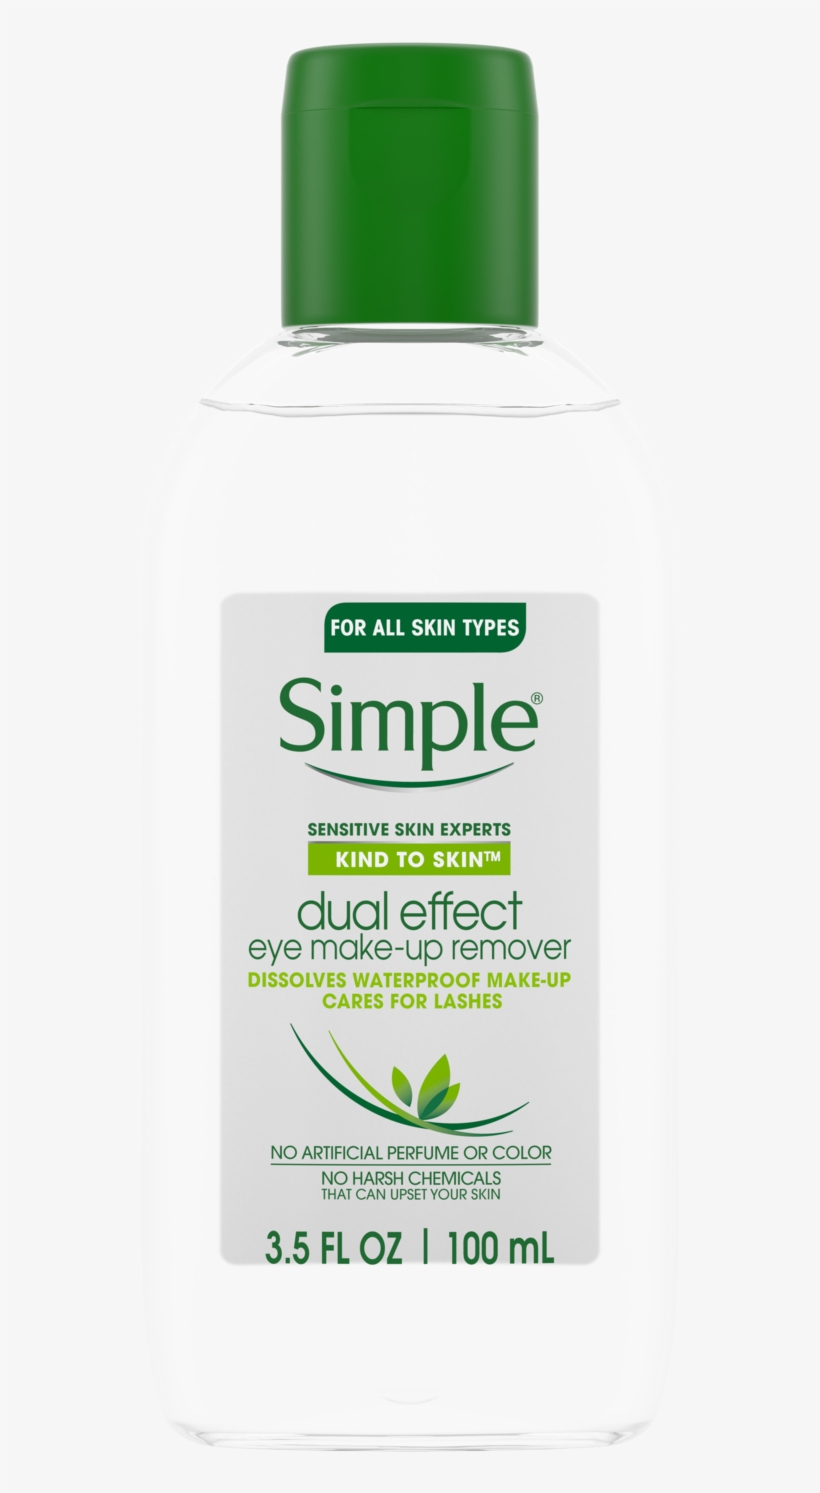 Simple Kind To Skin Dual Effect Eye Make Up Remover - Simple Cleansing Water, Micellar - 13.5 Fl Oz, transparent png #2898260